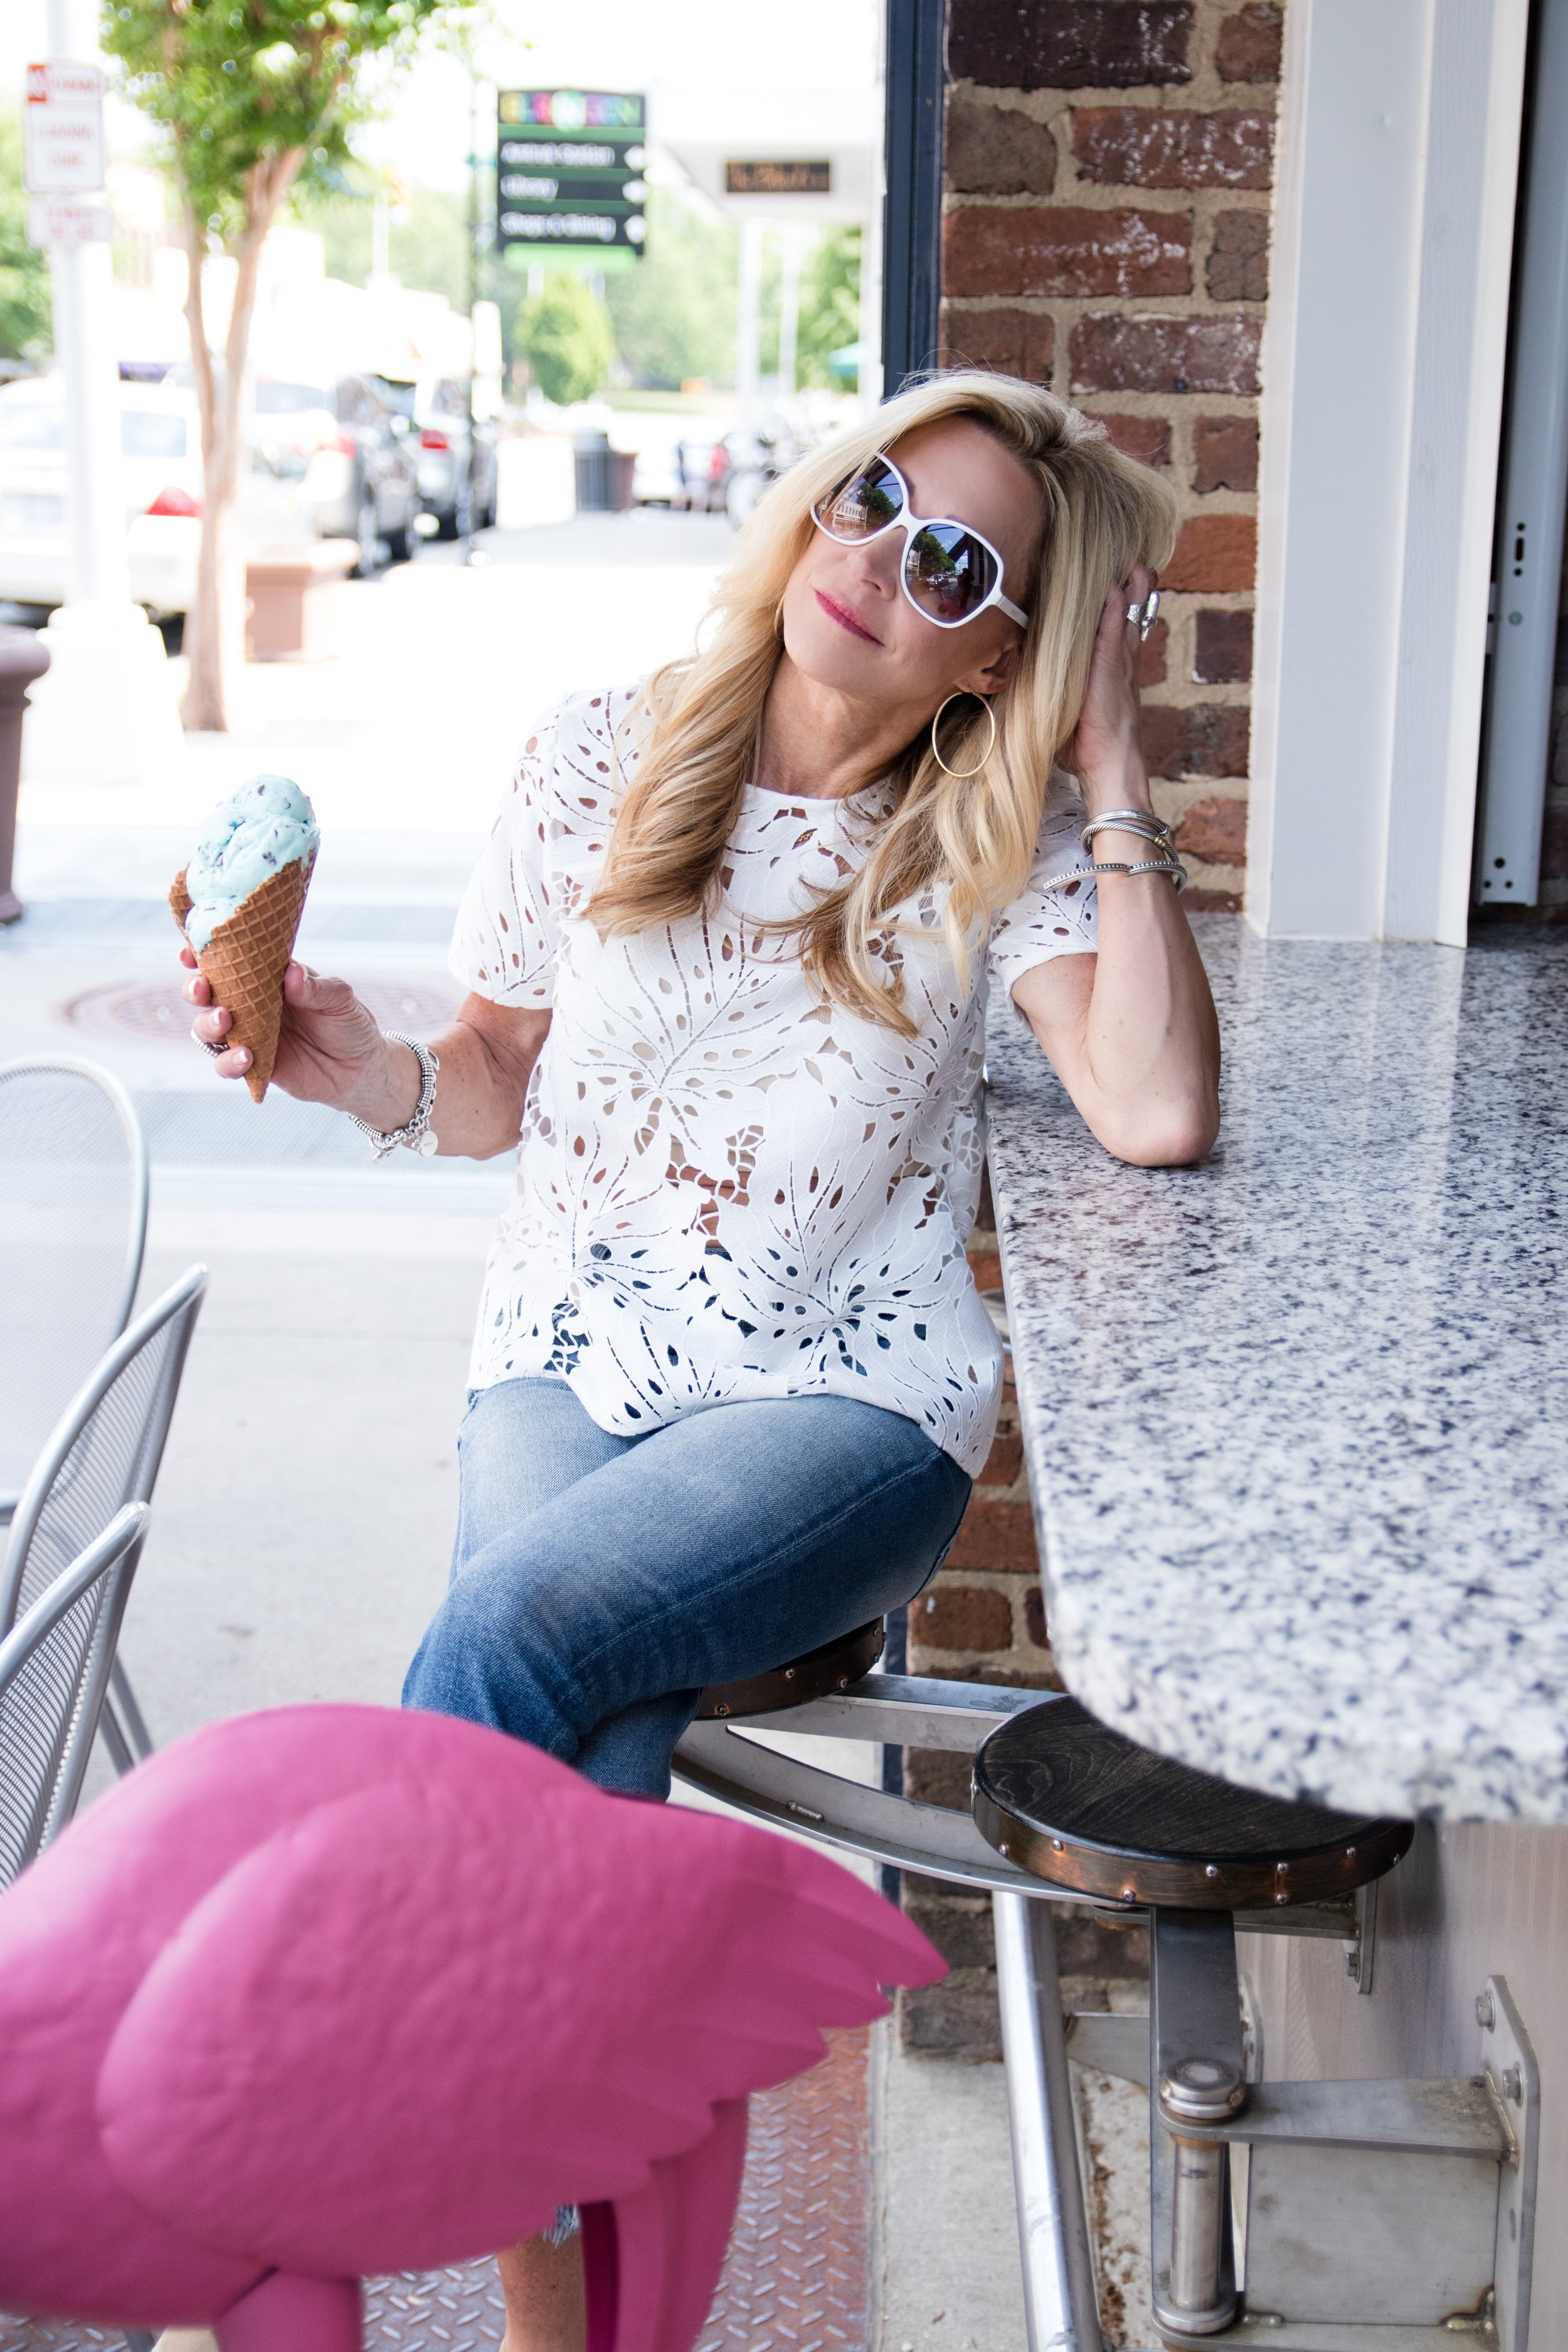 White cut work lace blouse and Target sunglasses